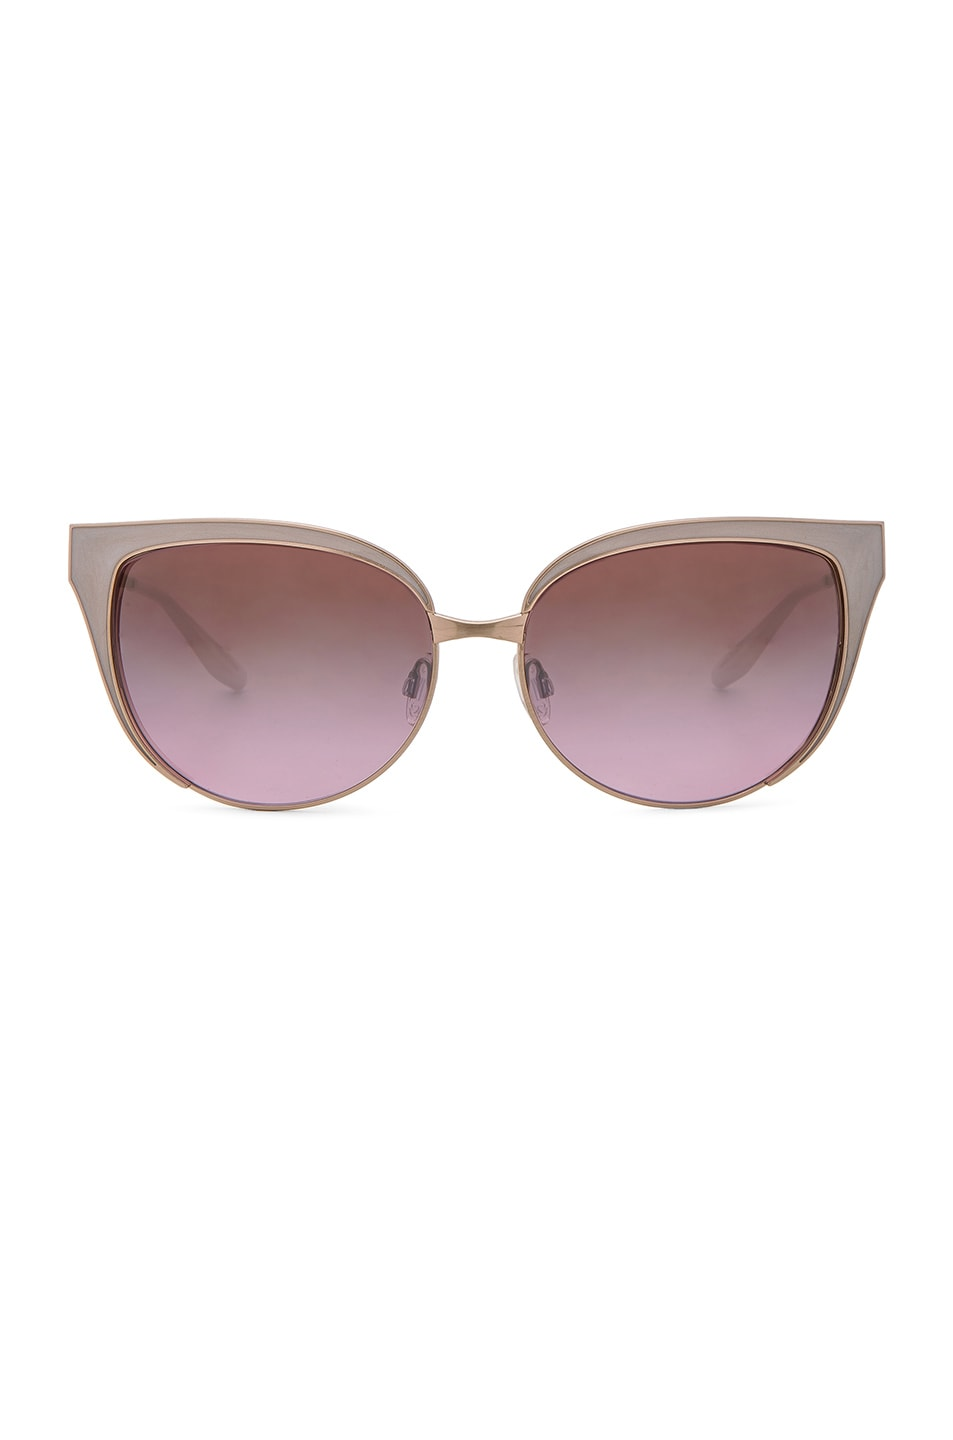 Image 1 of Barton Perreira for FWRD Valerie Sunglasses in Ivory & Lilac